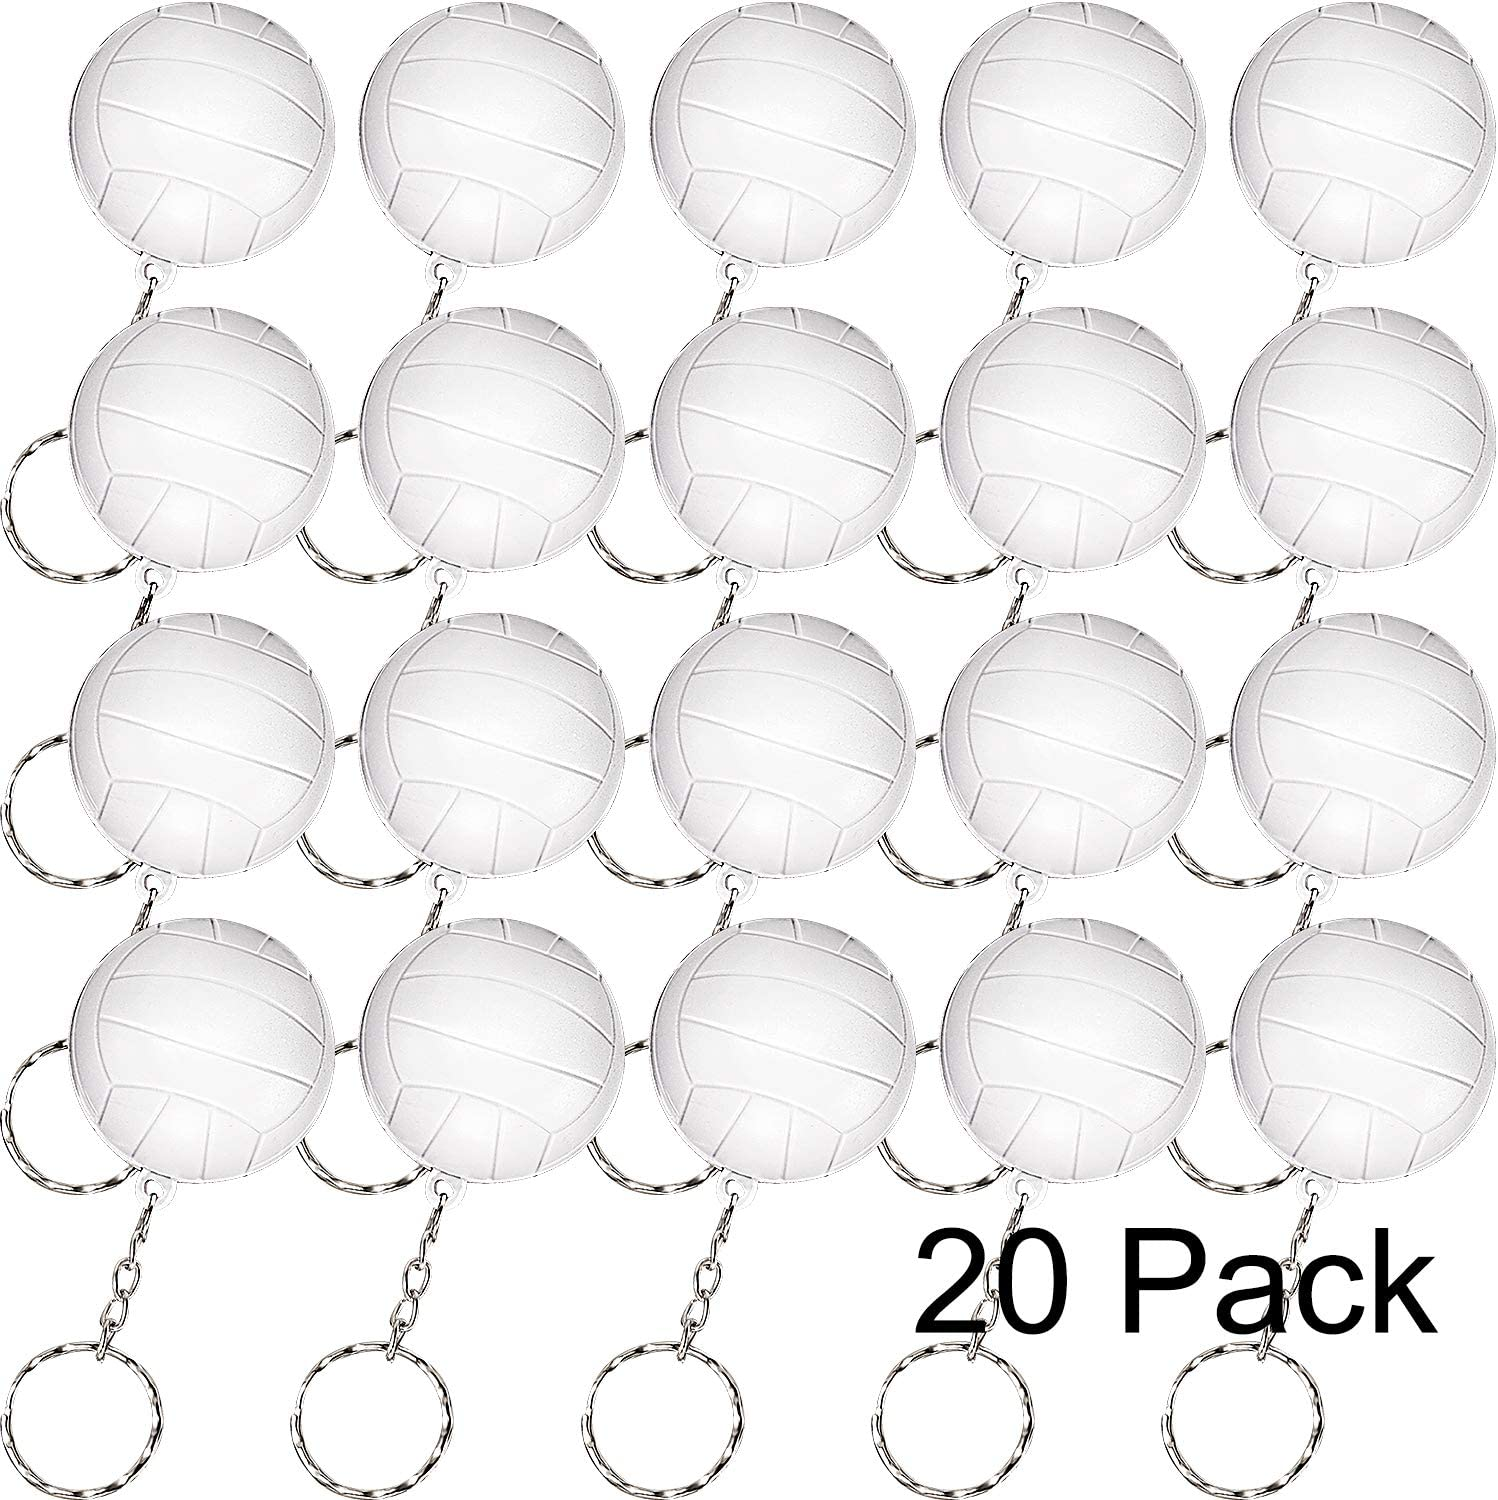 Blulu 20 Pack White Volleyball Keychains for Party Favors, School Carnival Reward, Party Bag Gift Fillers (Volleyball Keychains, 20 Pack)